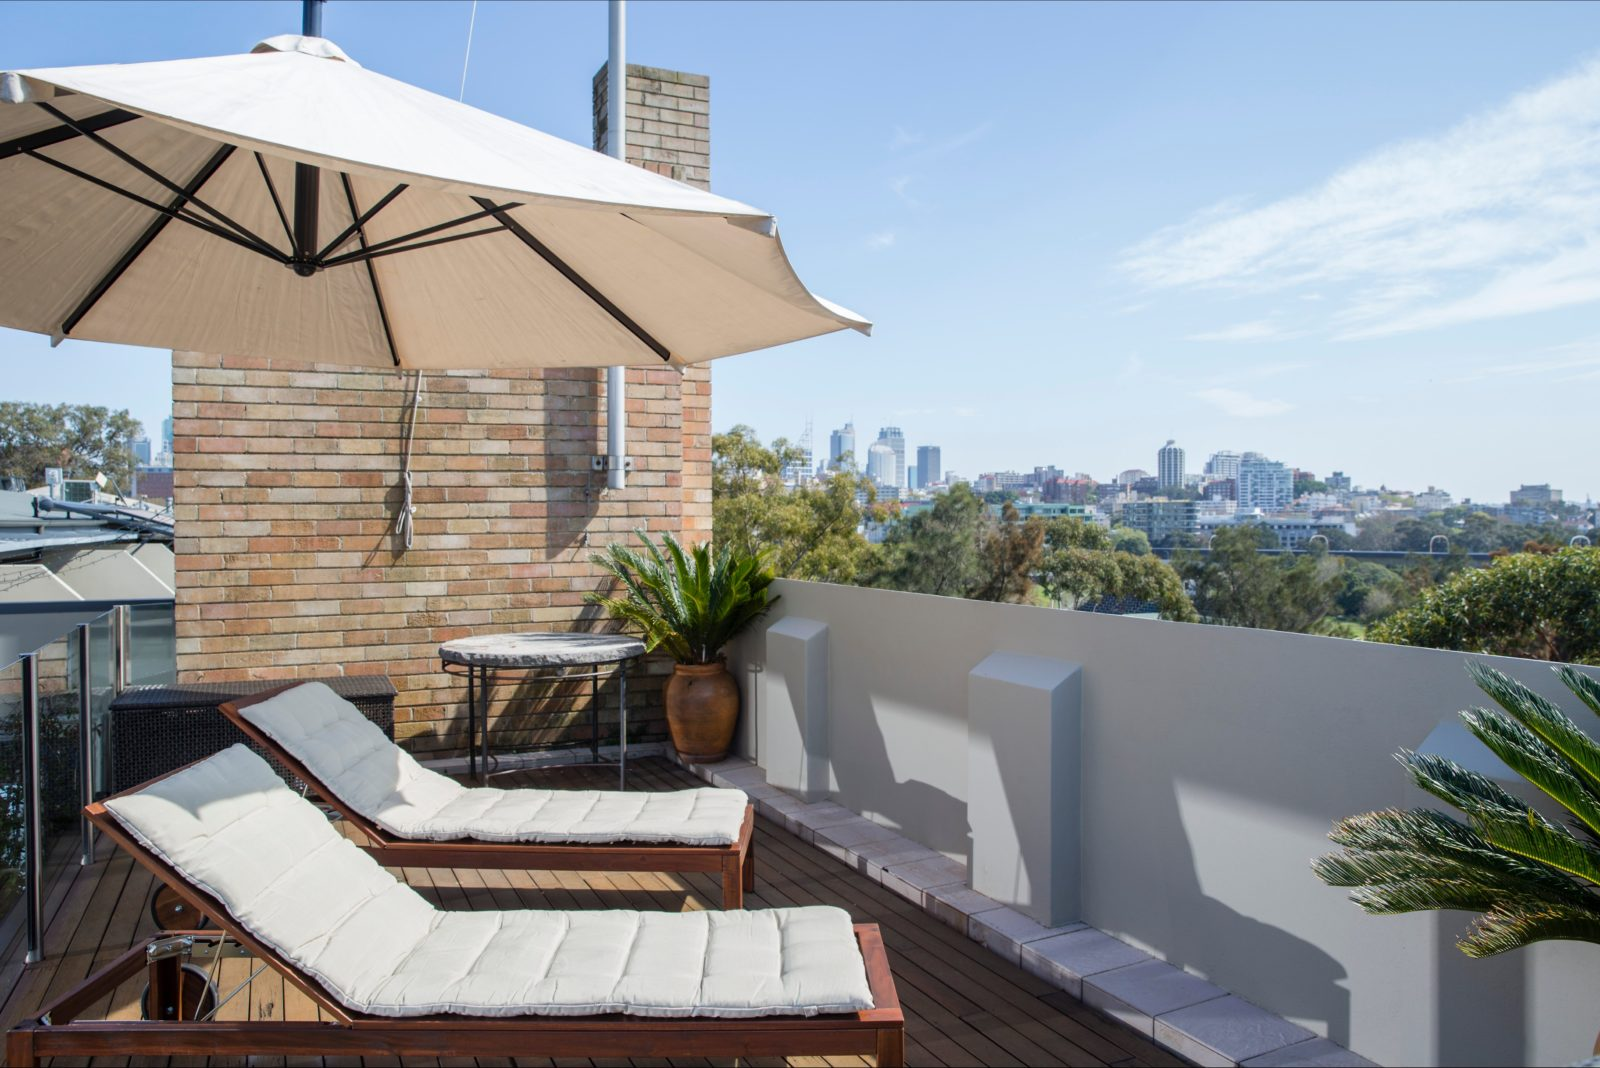 Rooftop terrace with city view